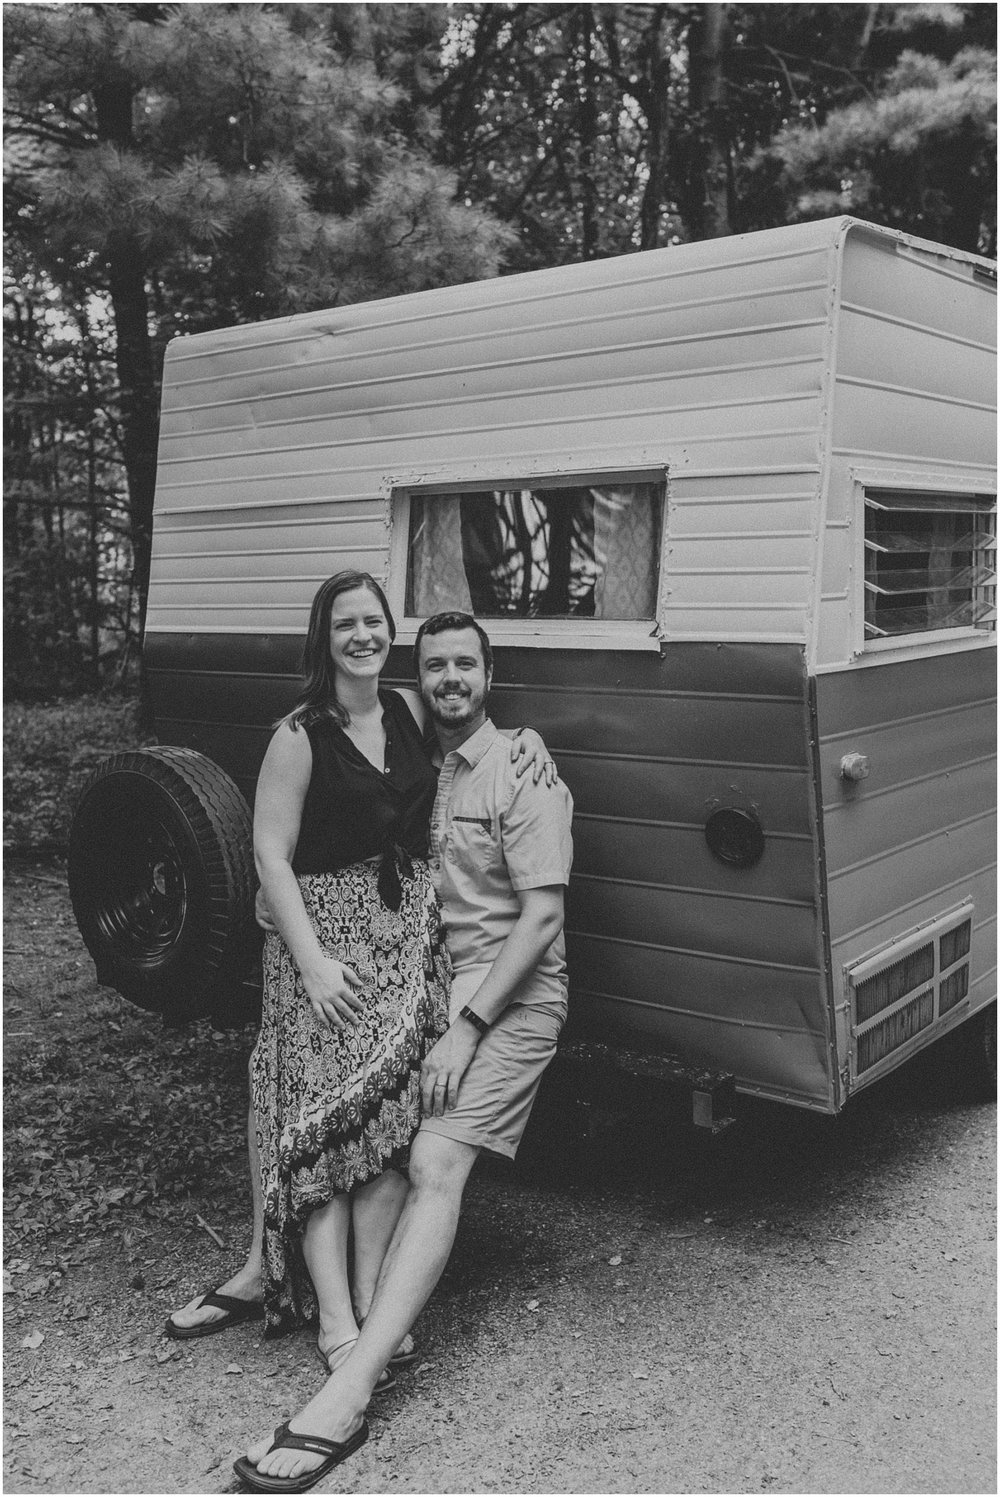 lifestyle-anniversary-engagement-photo session-rv-camping-road trip-vintage trailer-camping-outdoor photos_0246.jpg